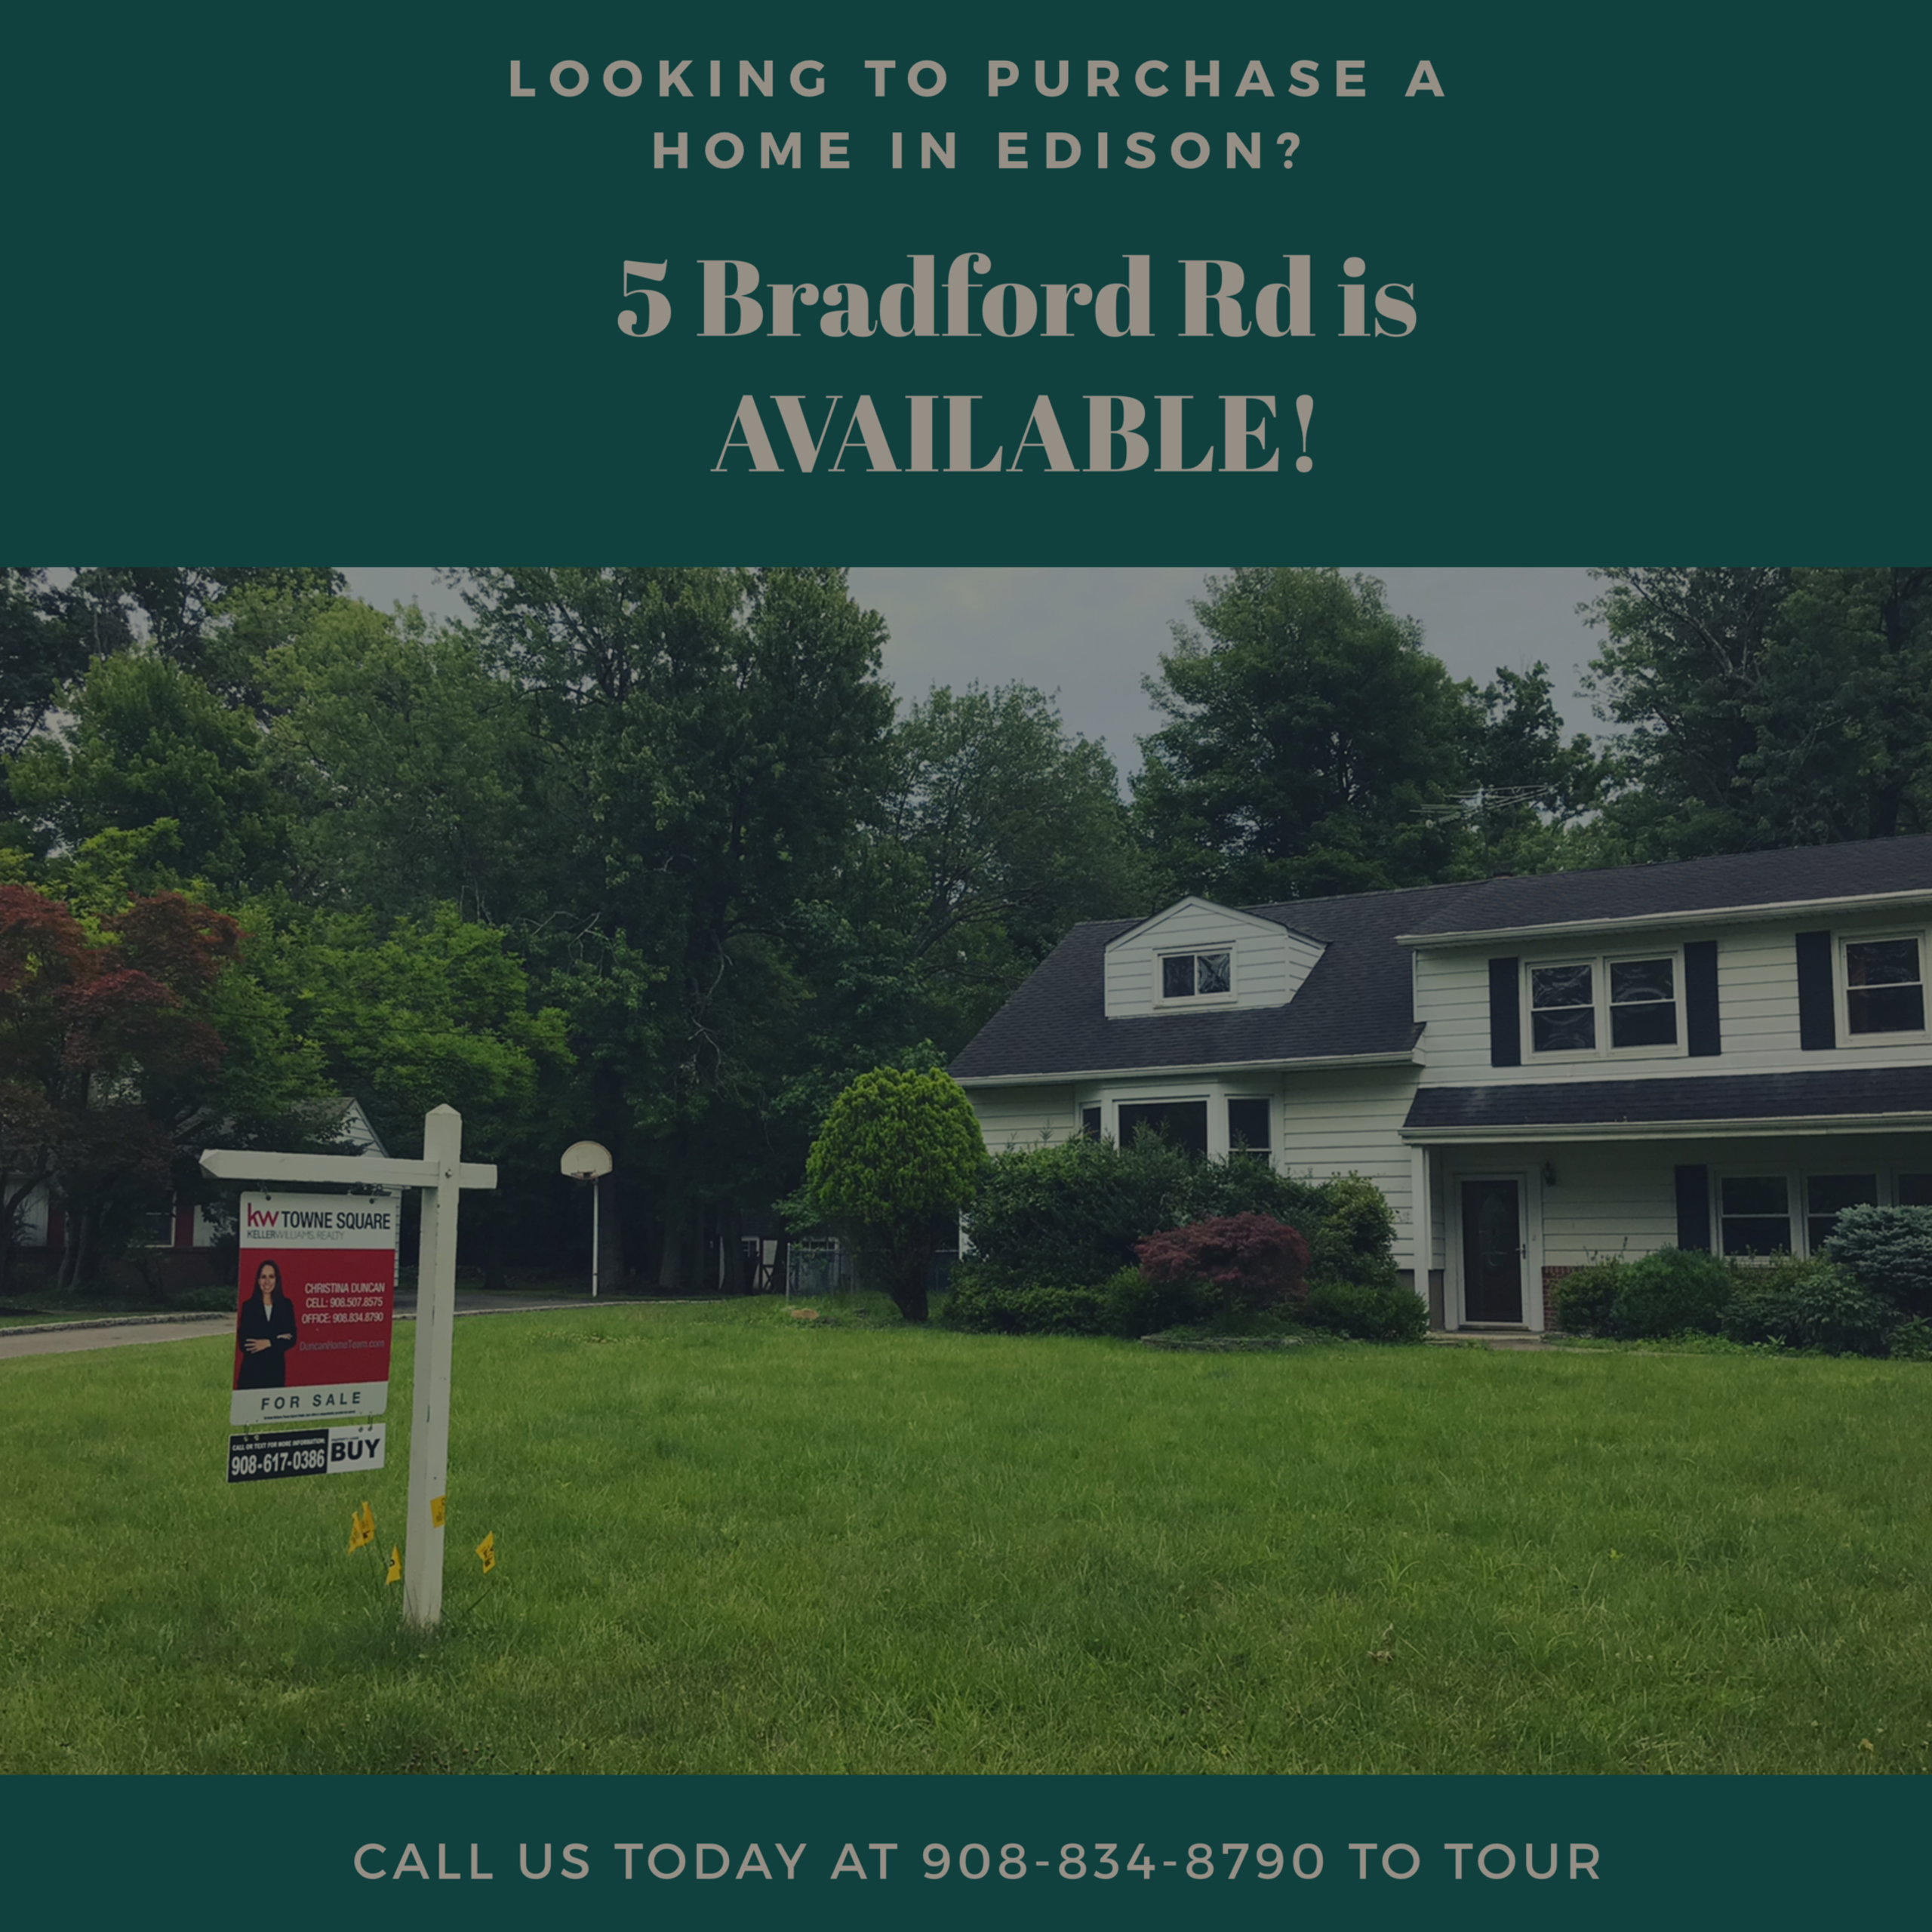 5 Bradford Rd AVAILABLE!